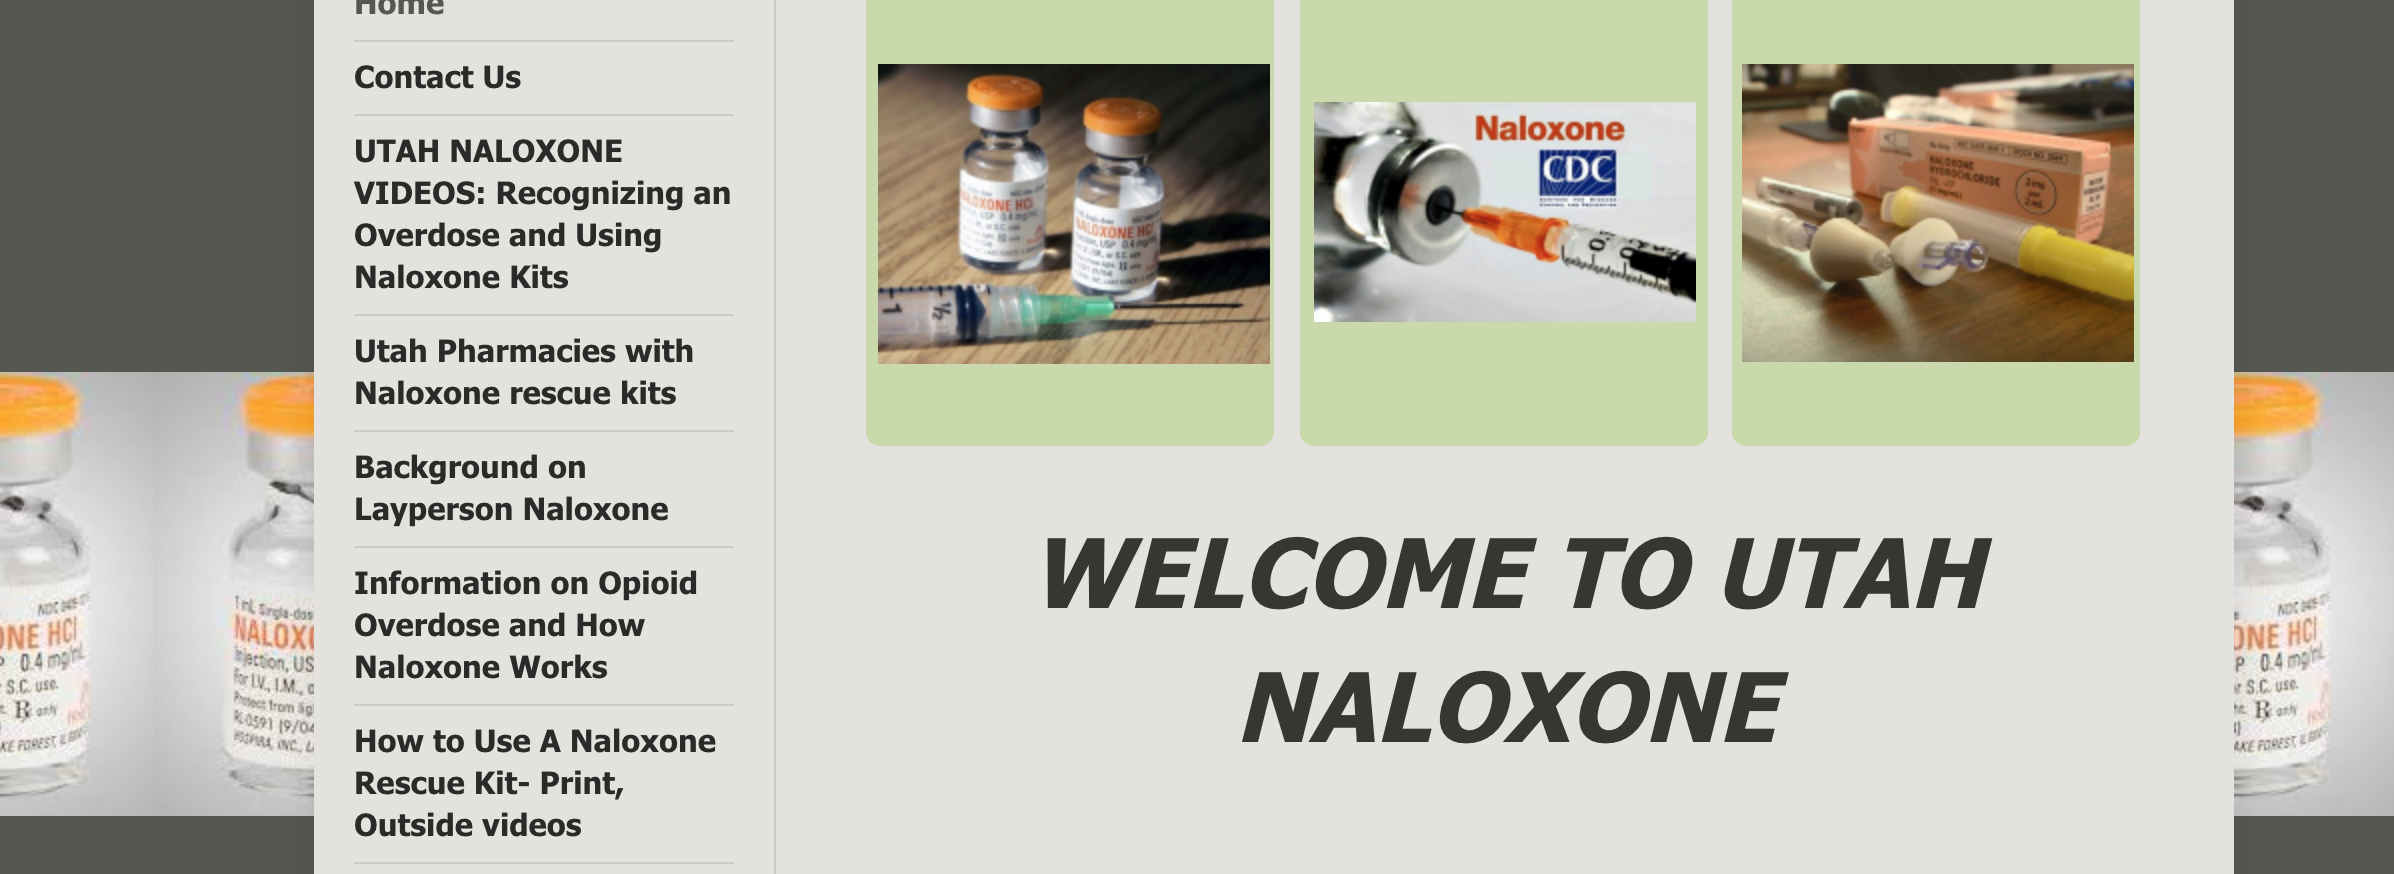 Click the image above or  http://www.utahnaloxone.org/